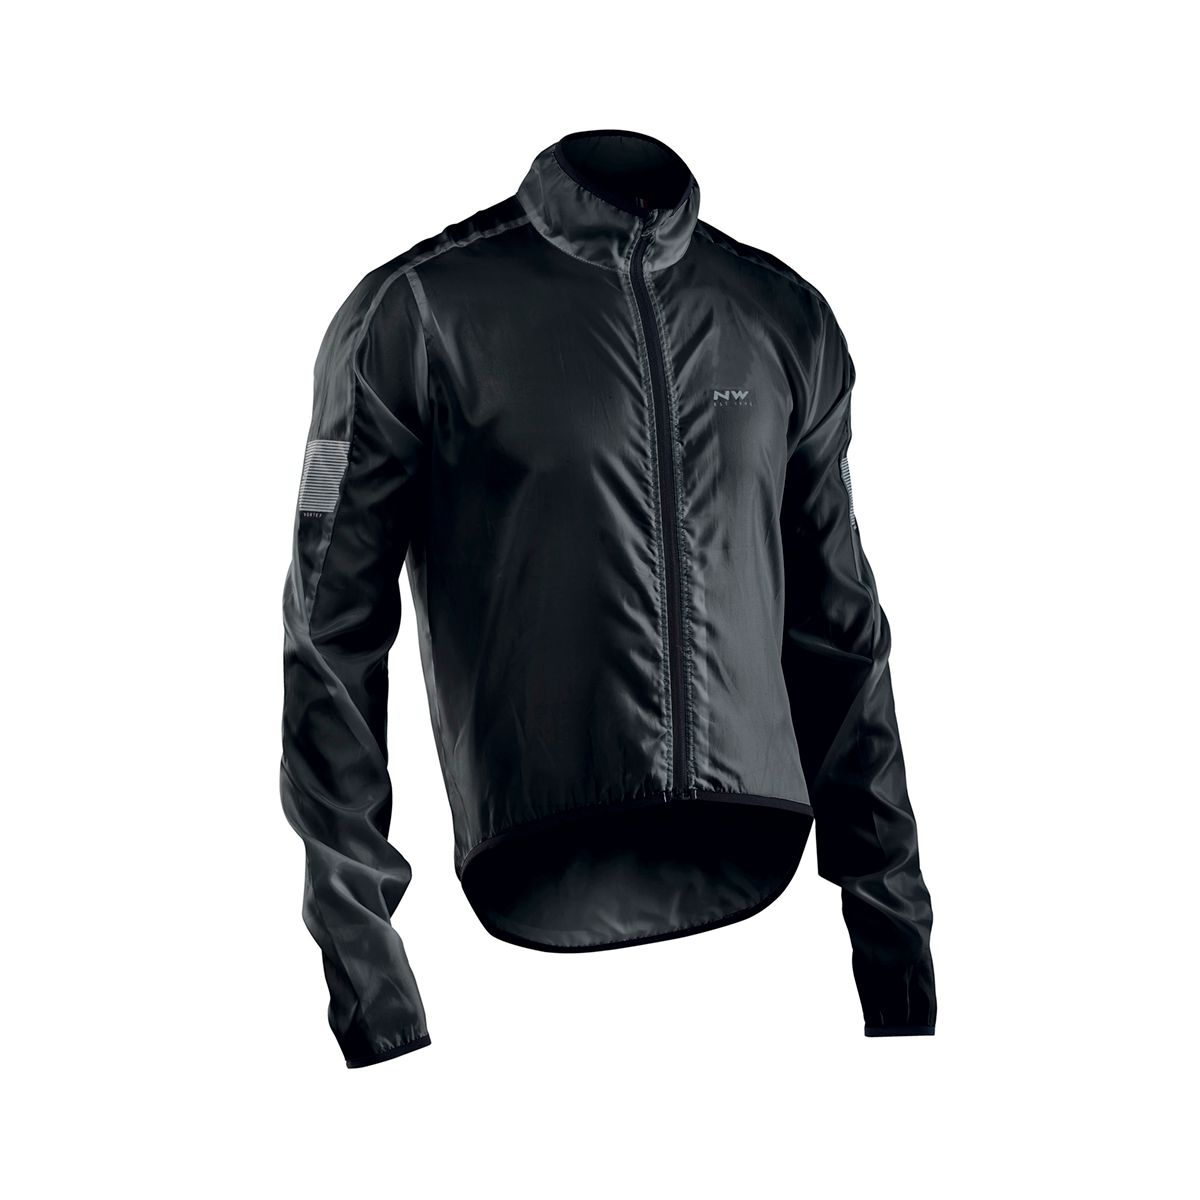 VORTEX JACKET Windjacke